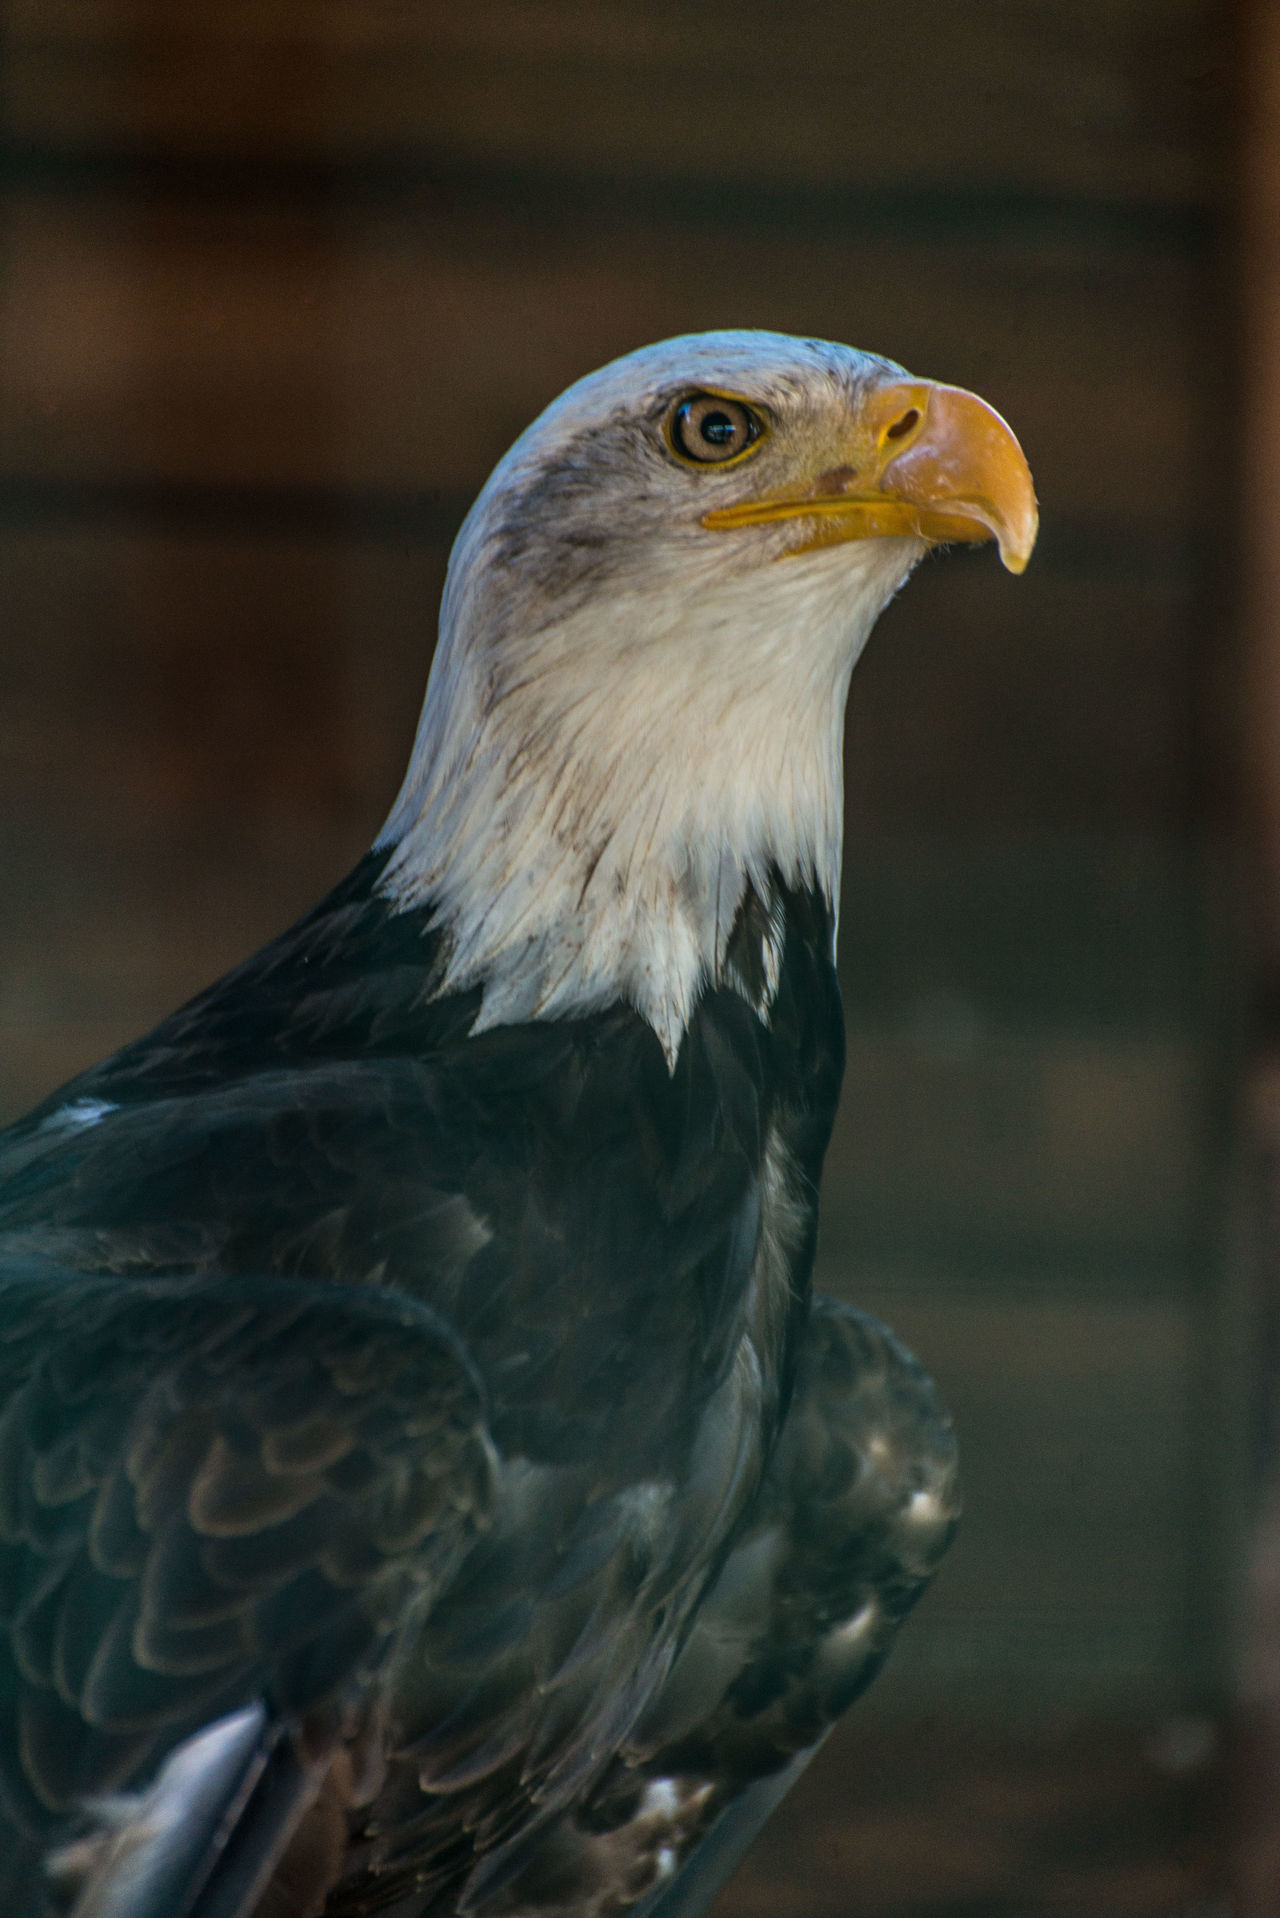 sea eagle bird Animal Body Part Animal Head  Animal Themes Avian Beak Beauty In Nature Bird Bird Of Prey Close-up Day Eagle Eagle Portrait Feather  Focus On Foreground Nature No People Outdoors Owl Portrait Sea Sea Eagle Selective Focus Wildlife